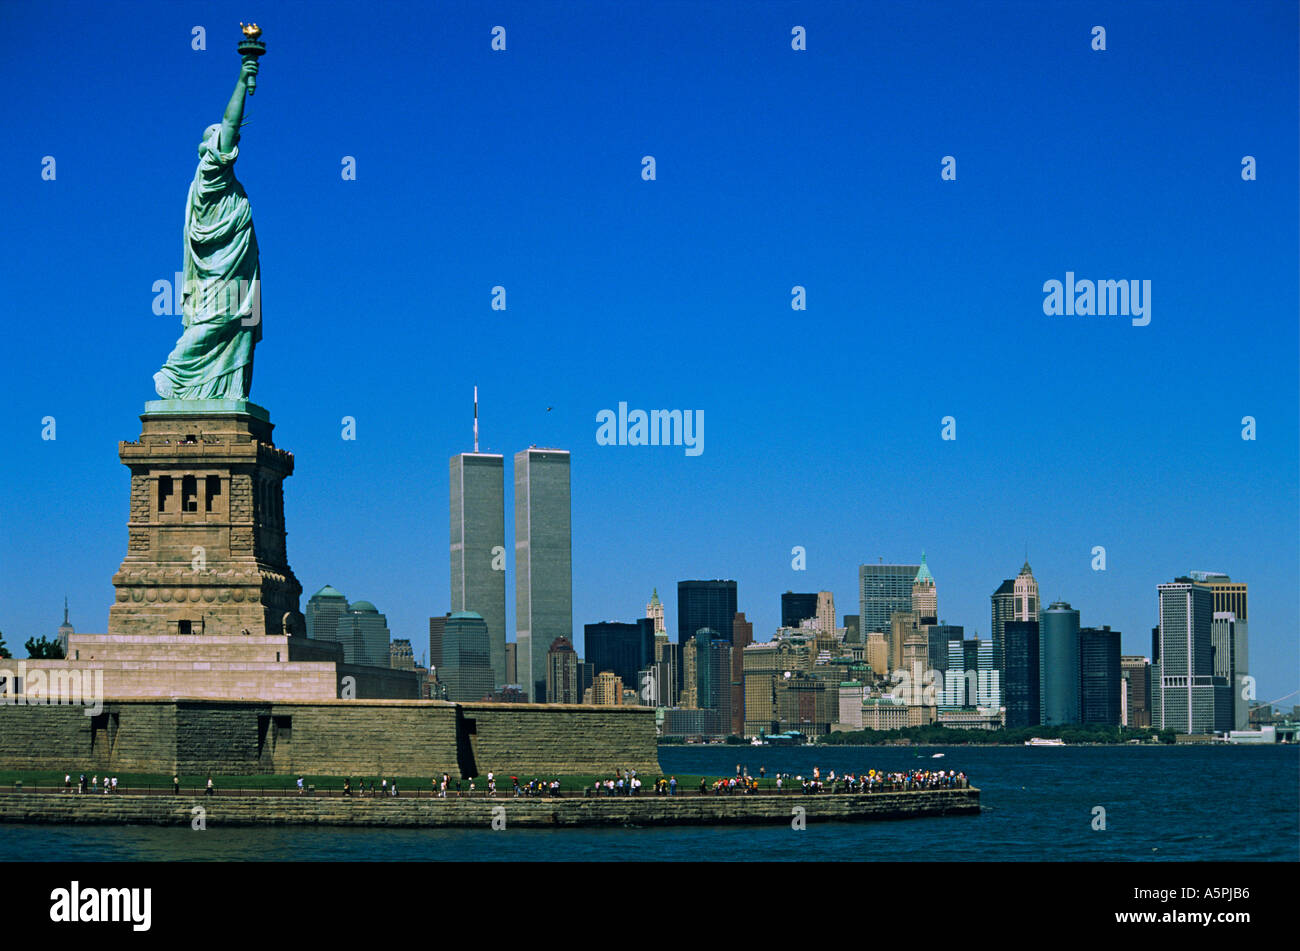 new york skyline with statue of liberty before 911 with